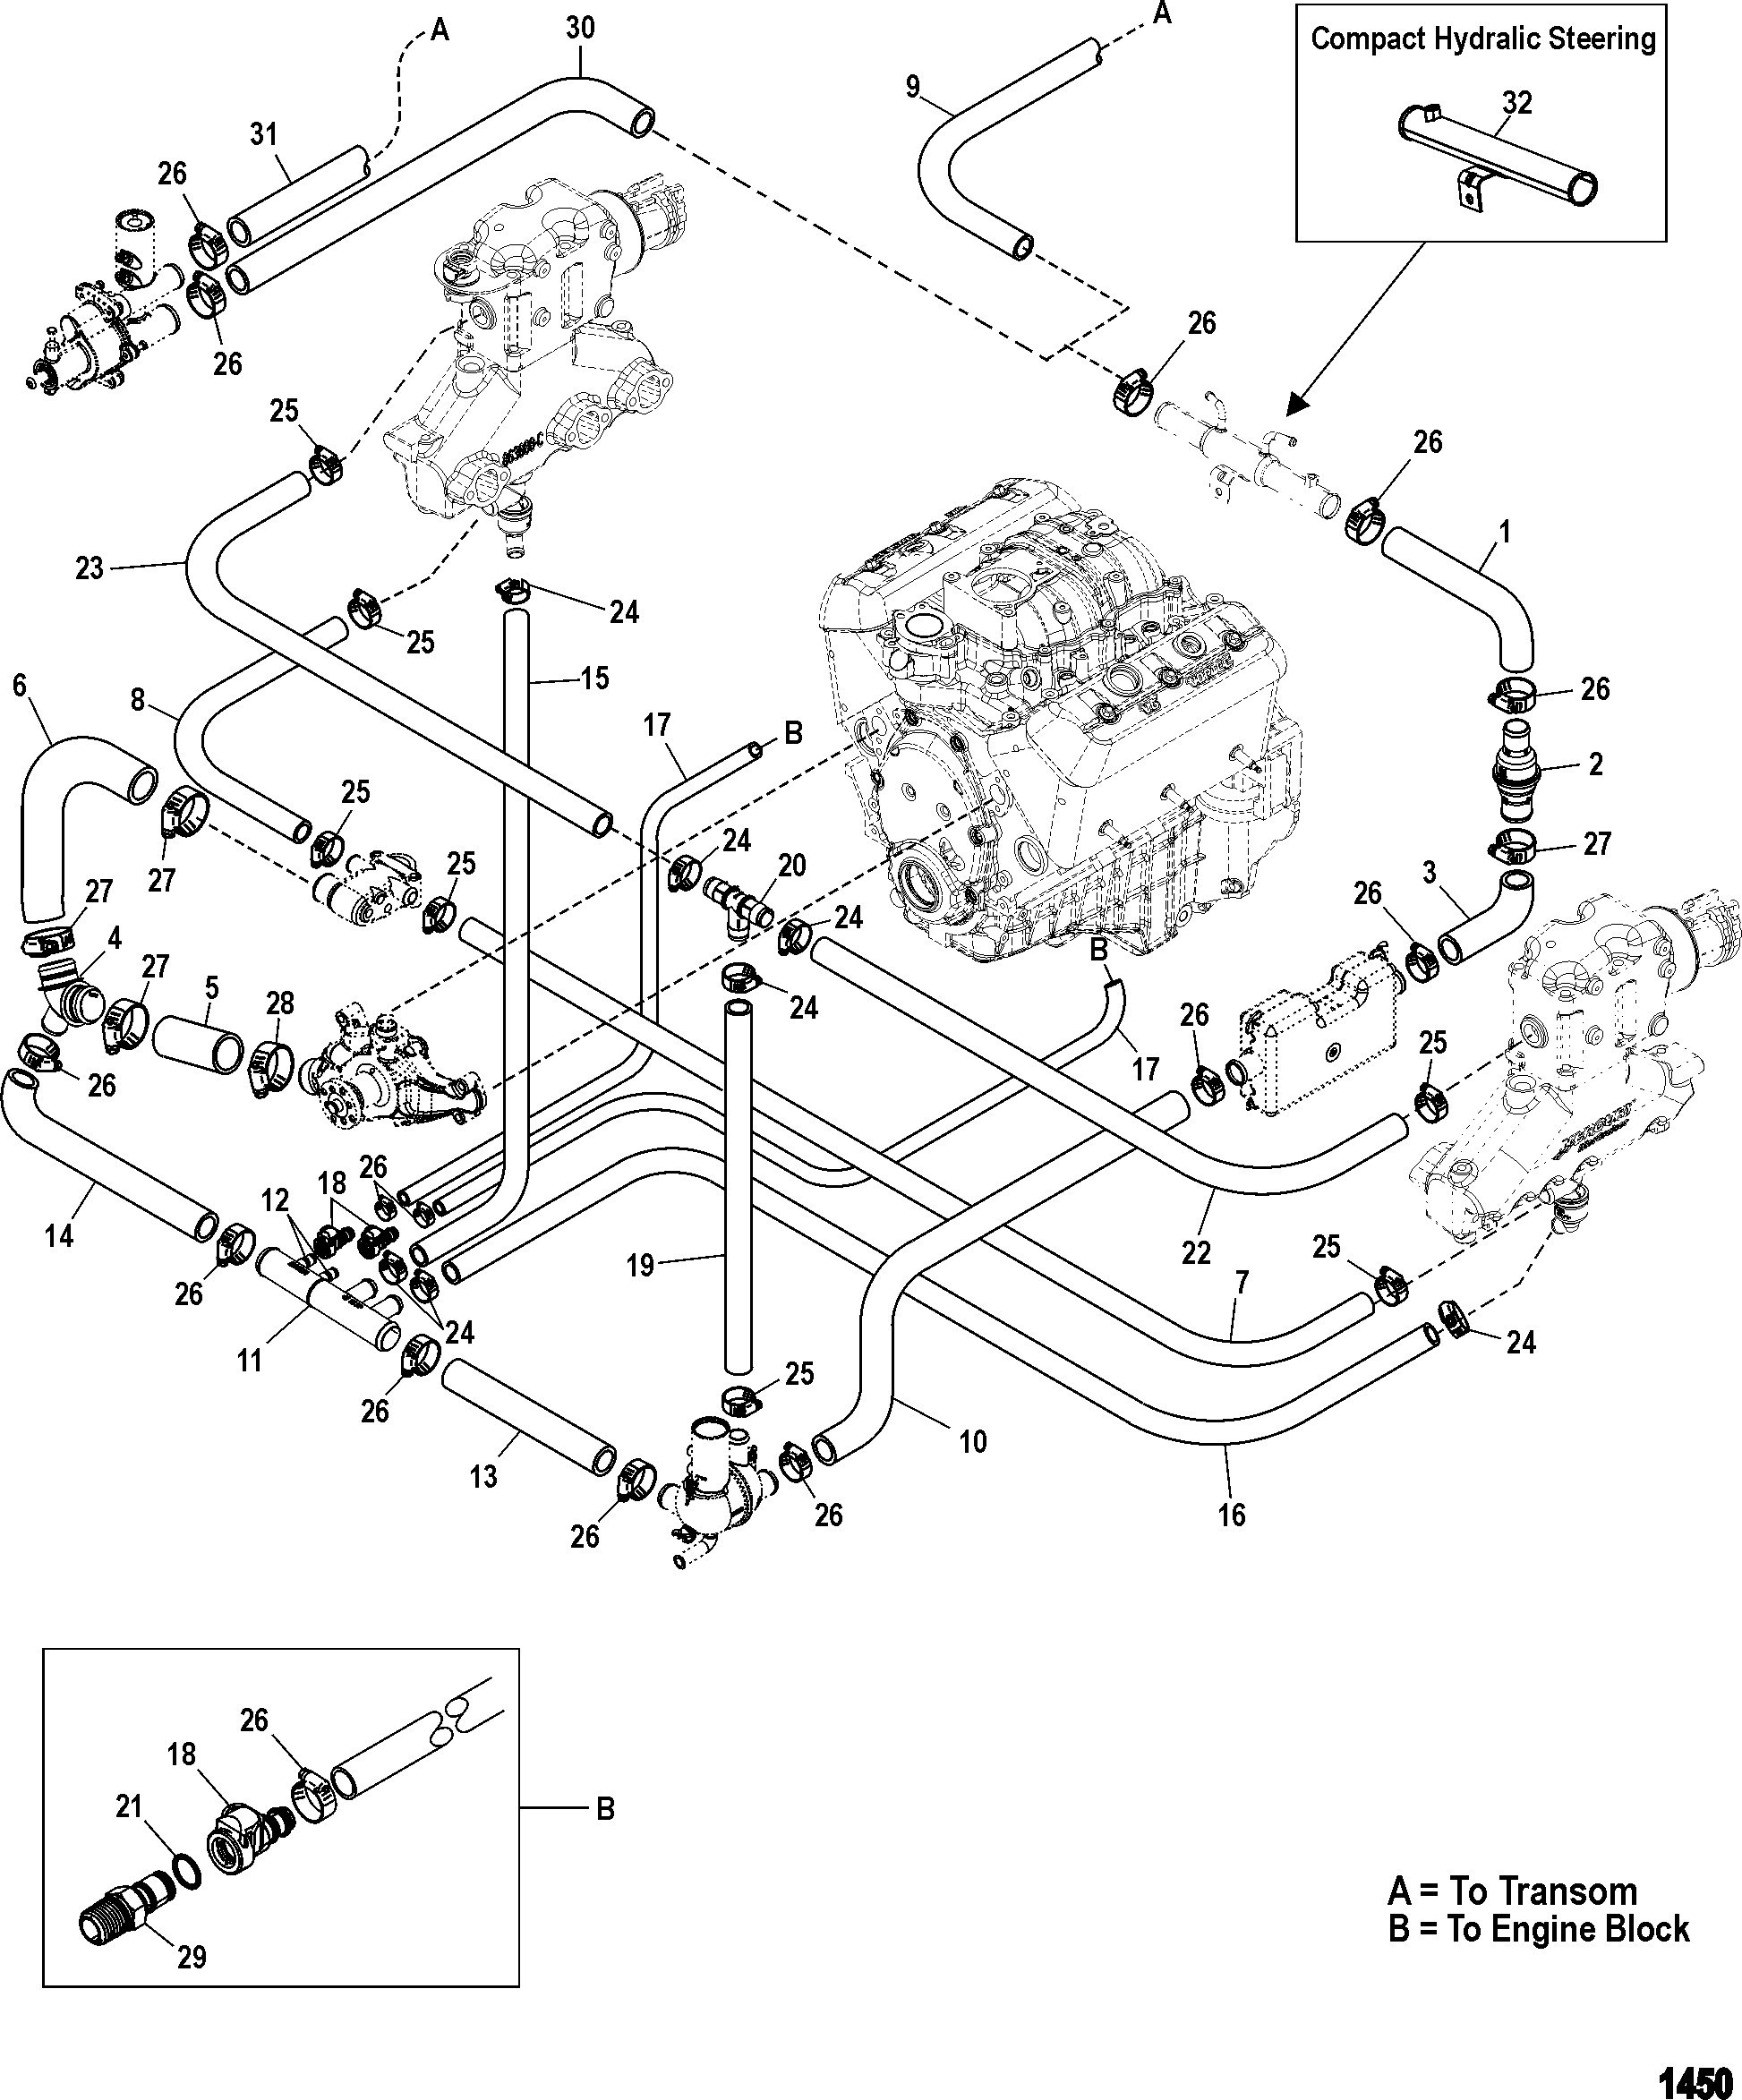 2007 Malibu Power Steering Diagram Wiring Will Be A Thing Electric Chevy Engine Opinions About U2022 Rh Voterid Co System Line